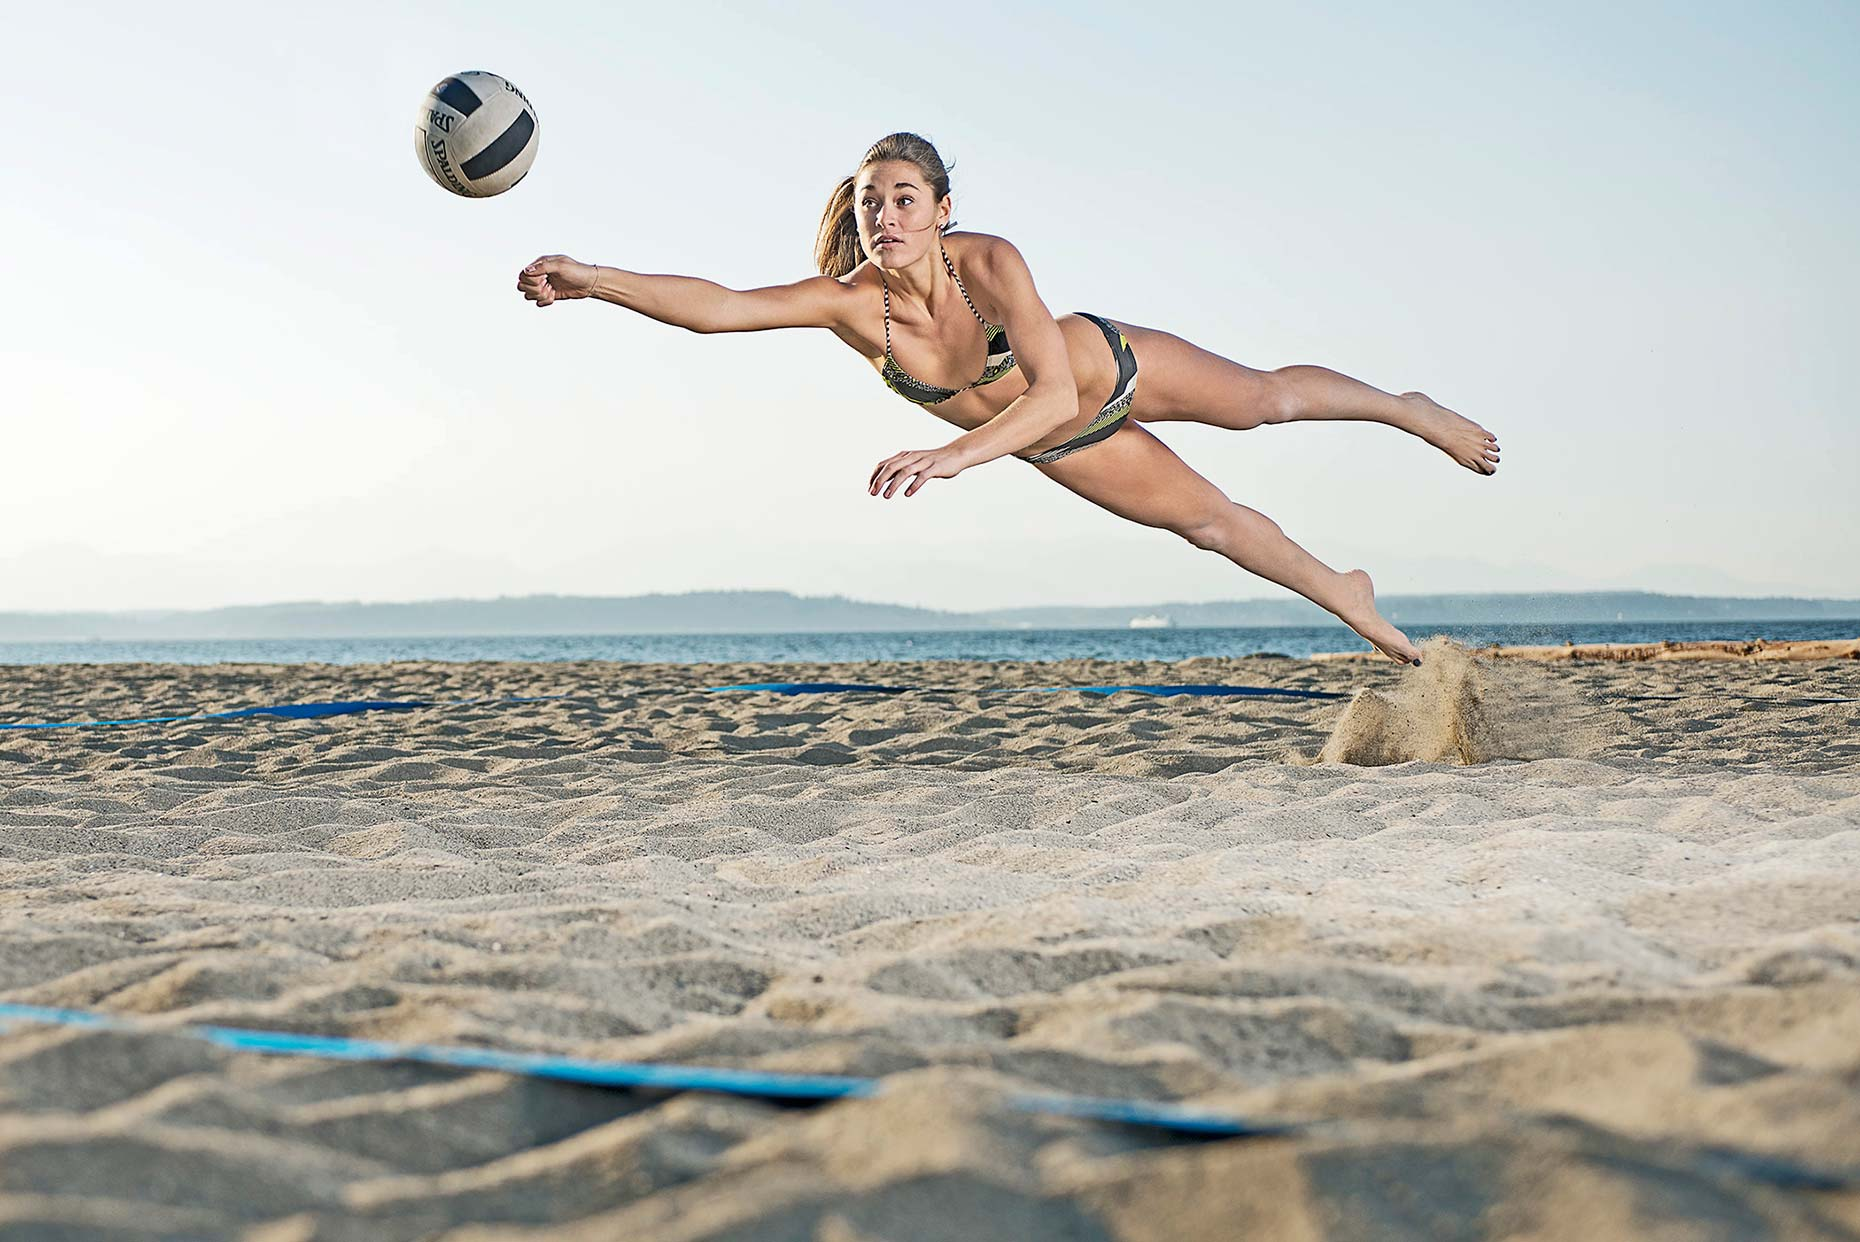 IanCoble_Coble_Beach-Volleyball_Alki5_b